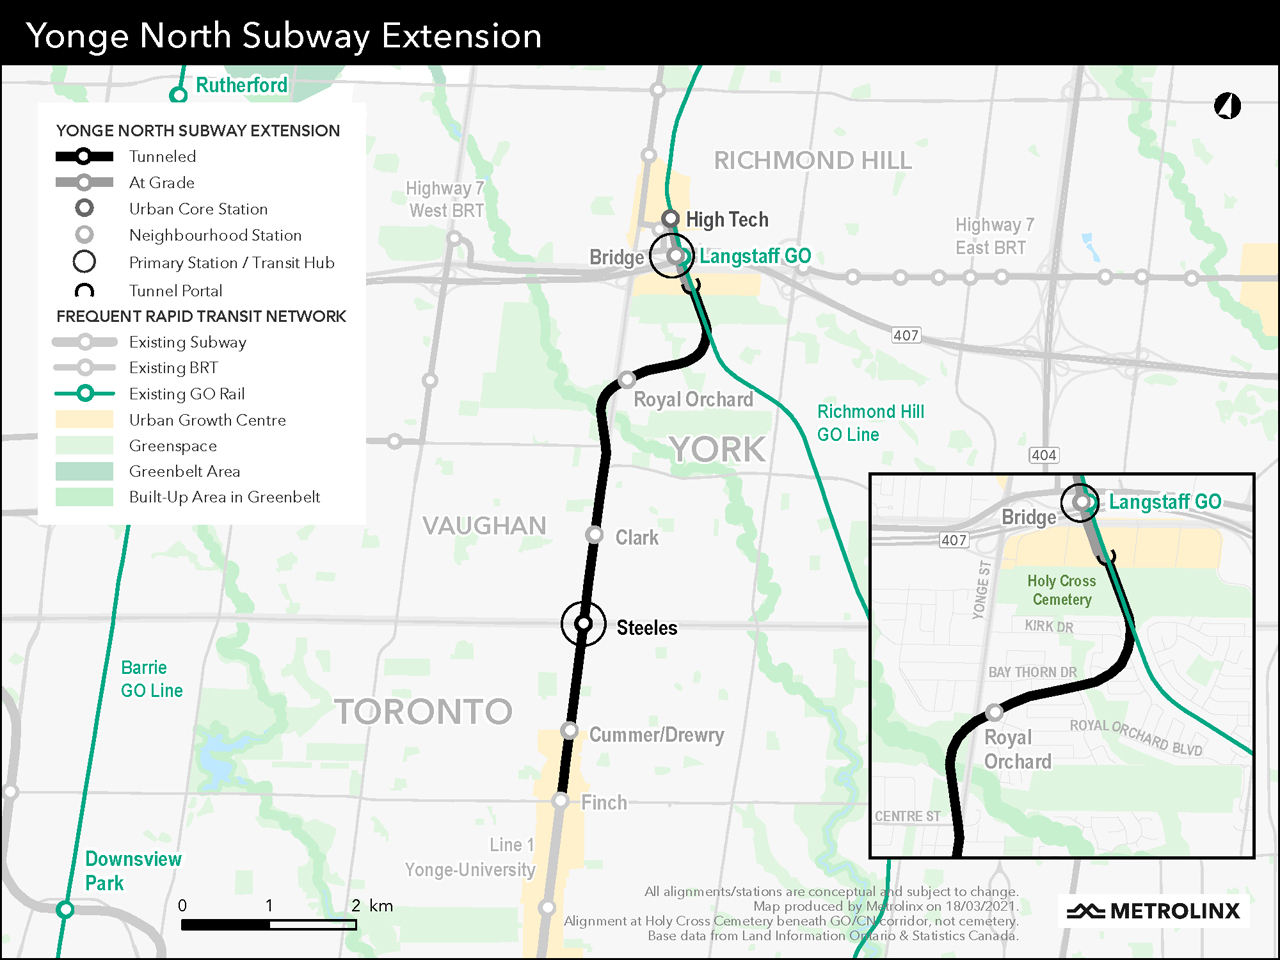 Moving on for further study is an alignment (pictured) that places the northern section of the extension at the surface along the existing CN corridor, rather than tunneling to Richmond Hill.